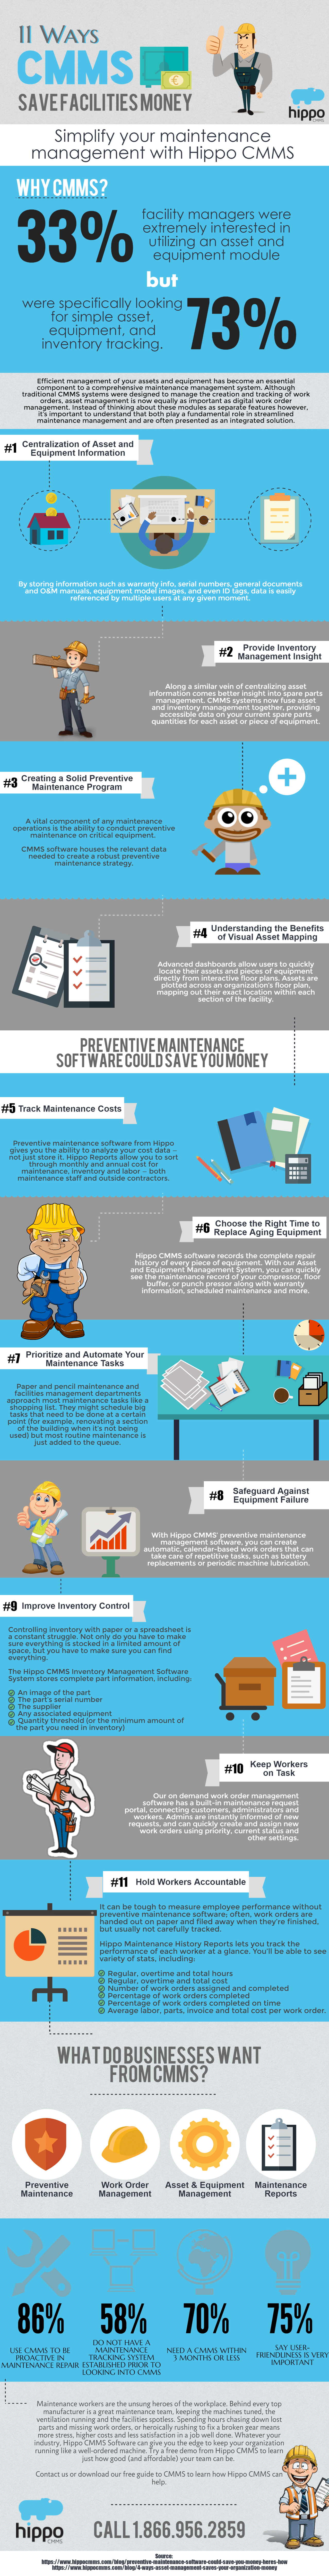 cmms_infographic-min